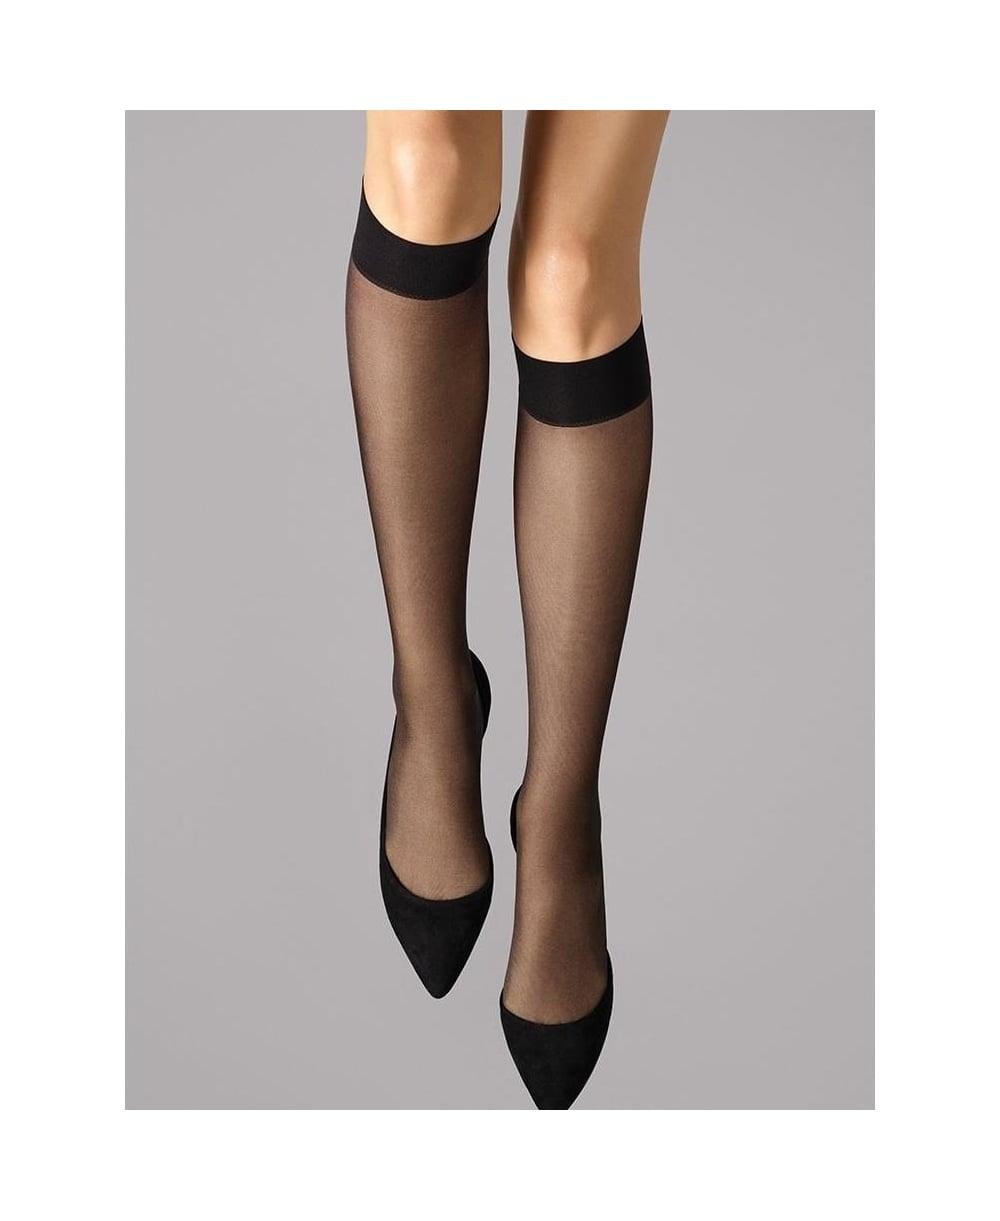 df36b5b53 Wolford Satin Touch 20 Knee-Highs - Socks from luxury-legs.com UK